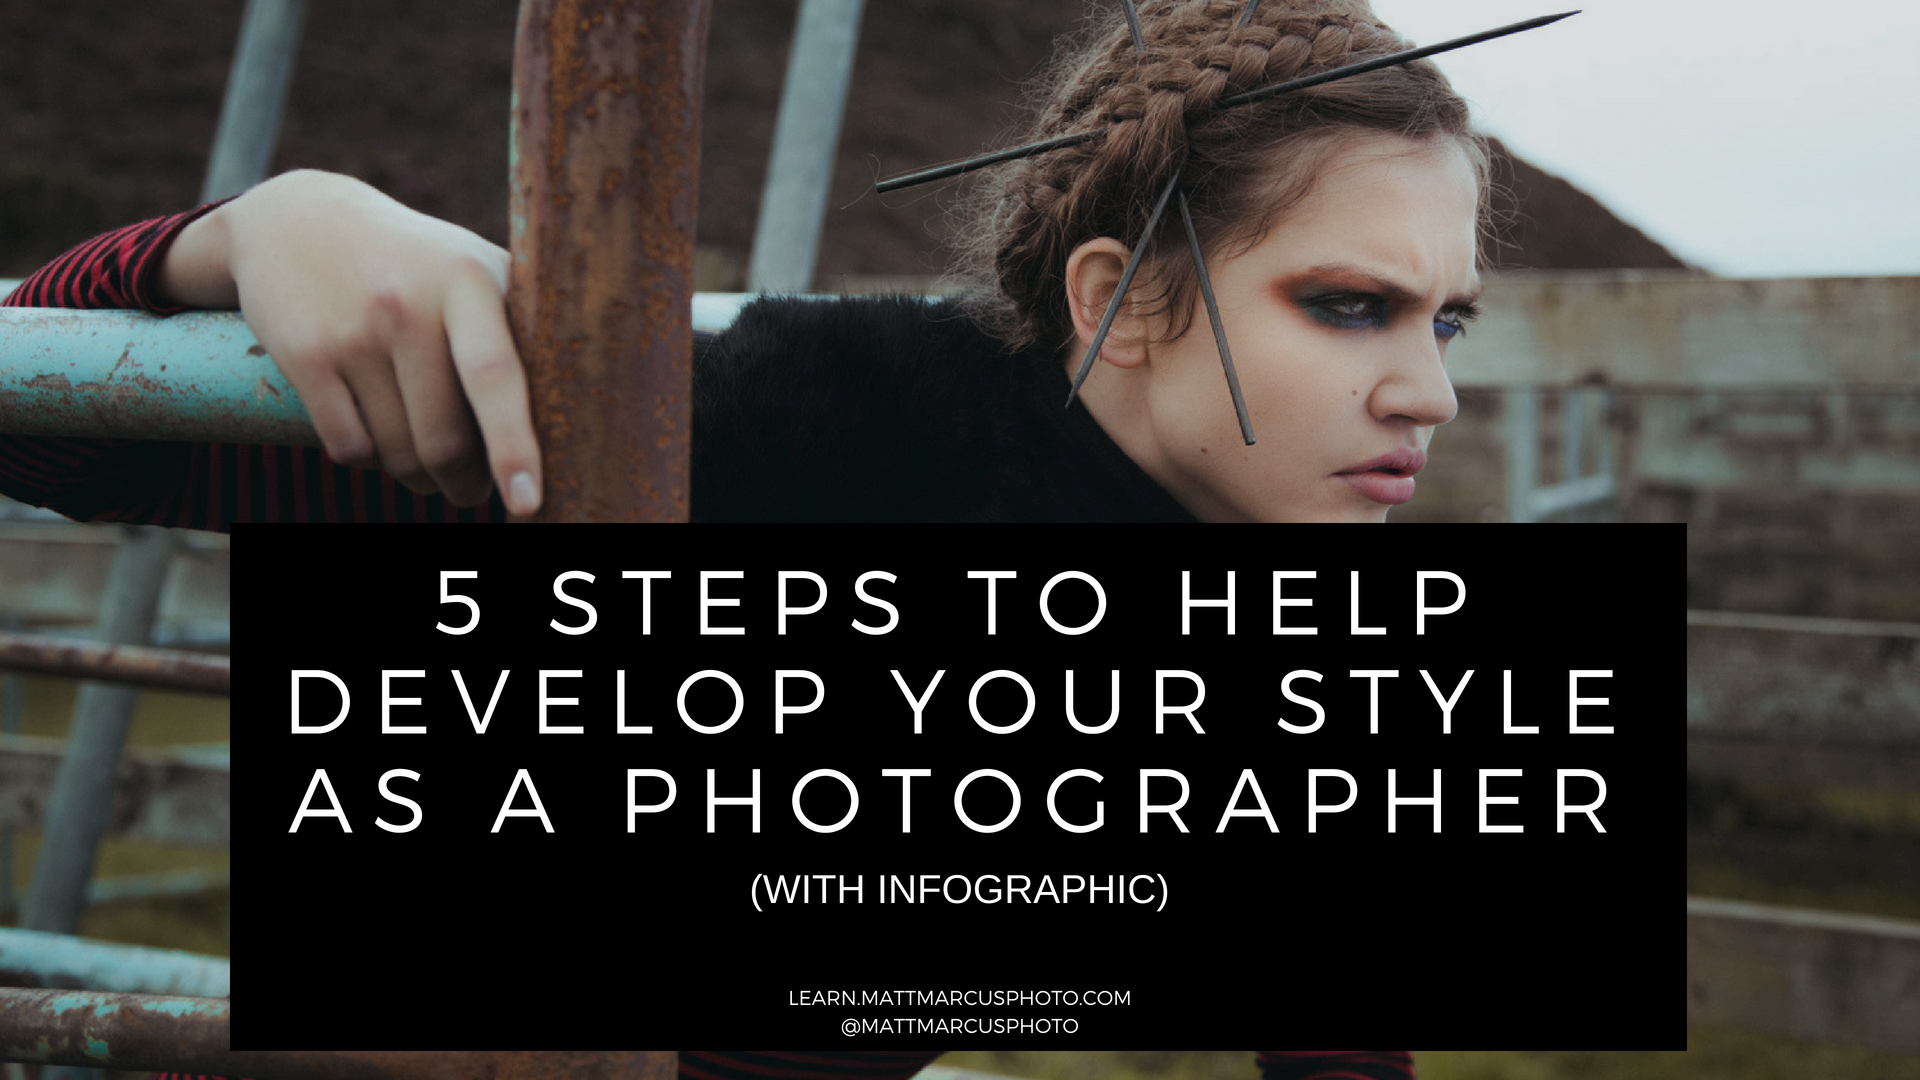 5 Steps to Help Develop Your Style as a Photographer - Matt Marcus